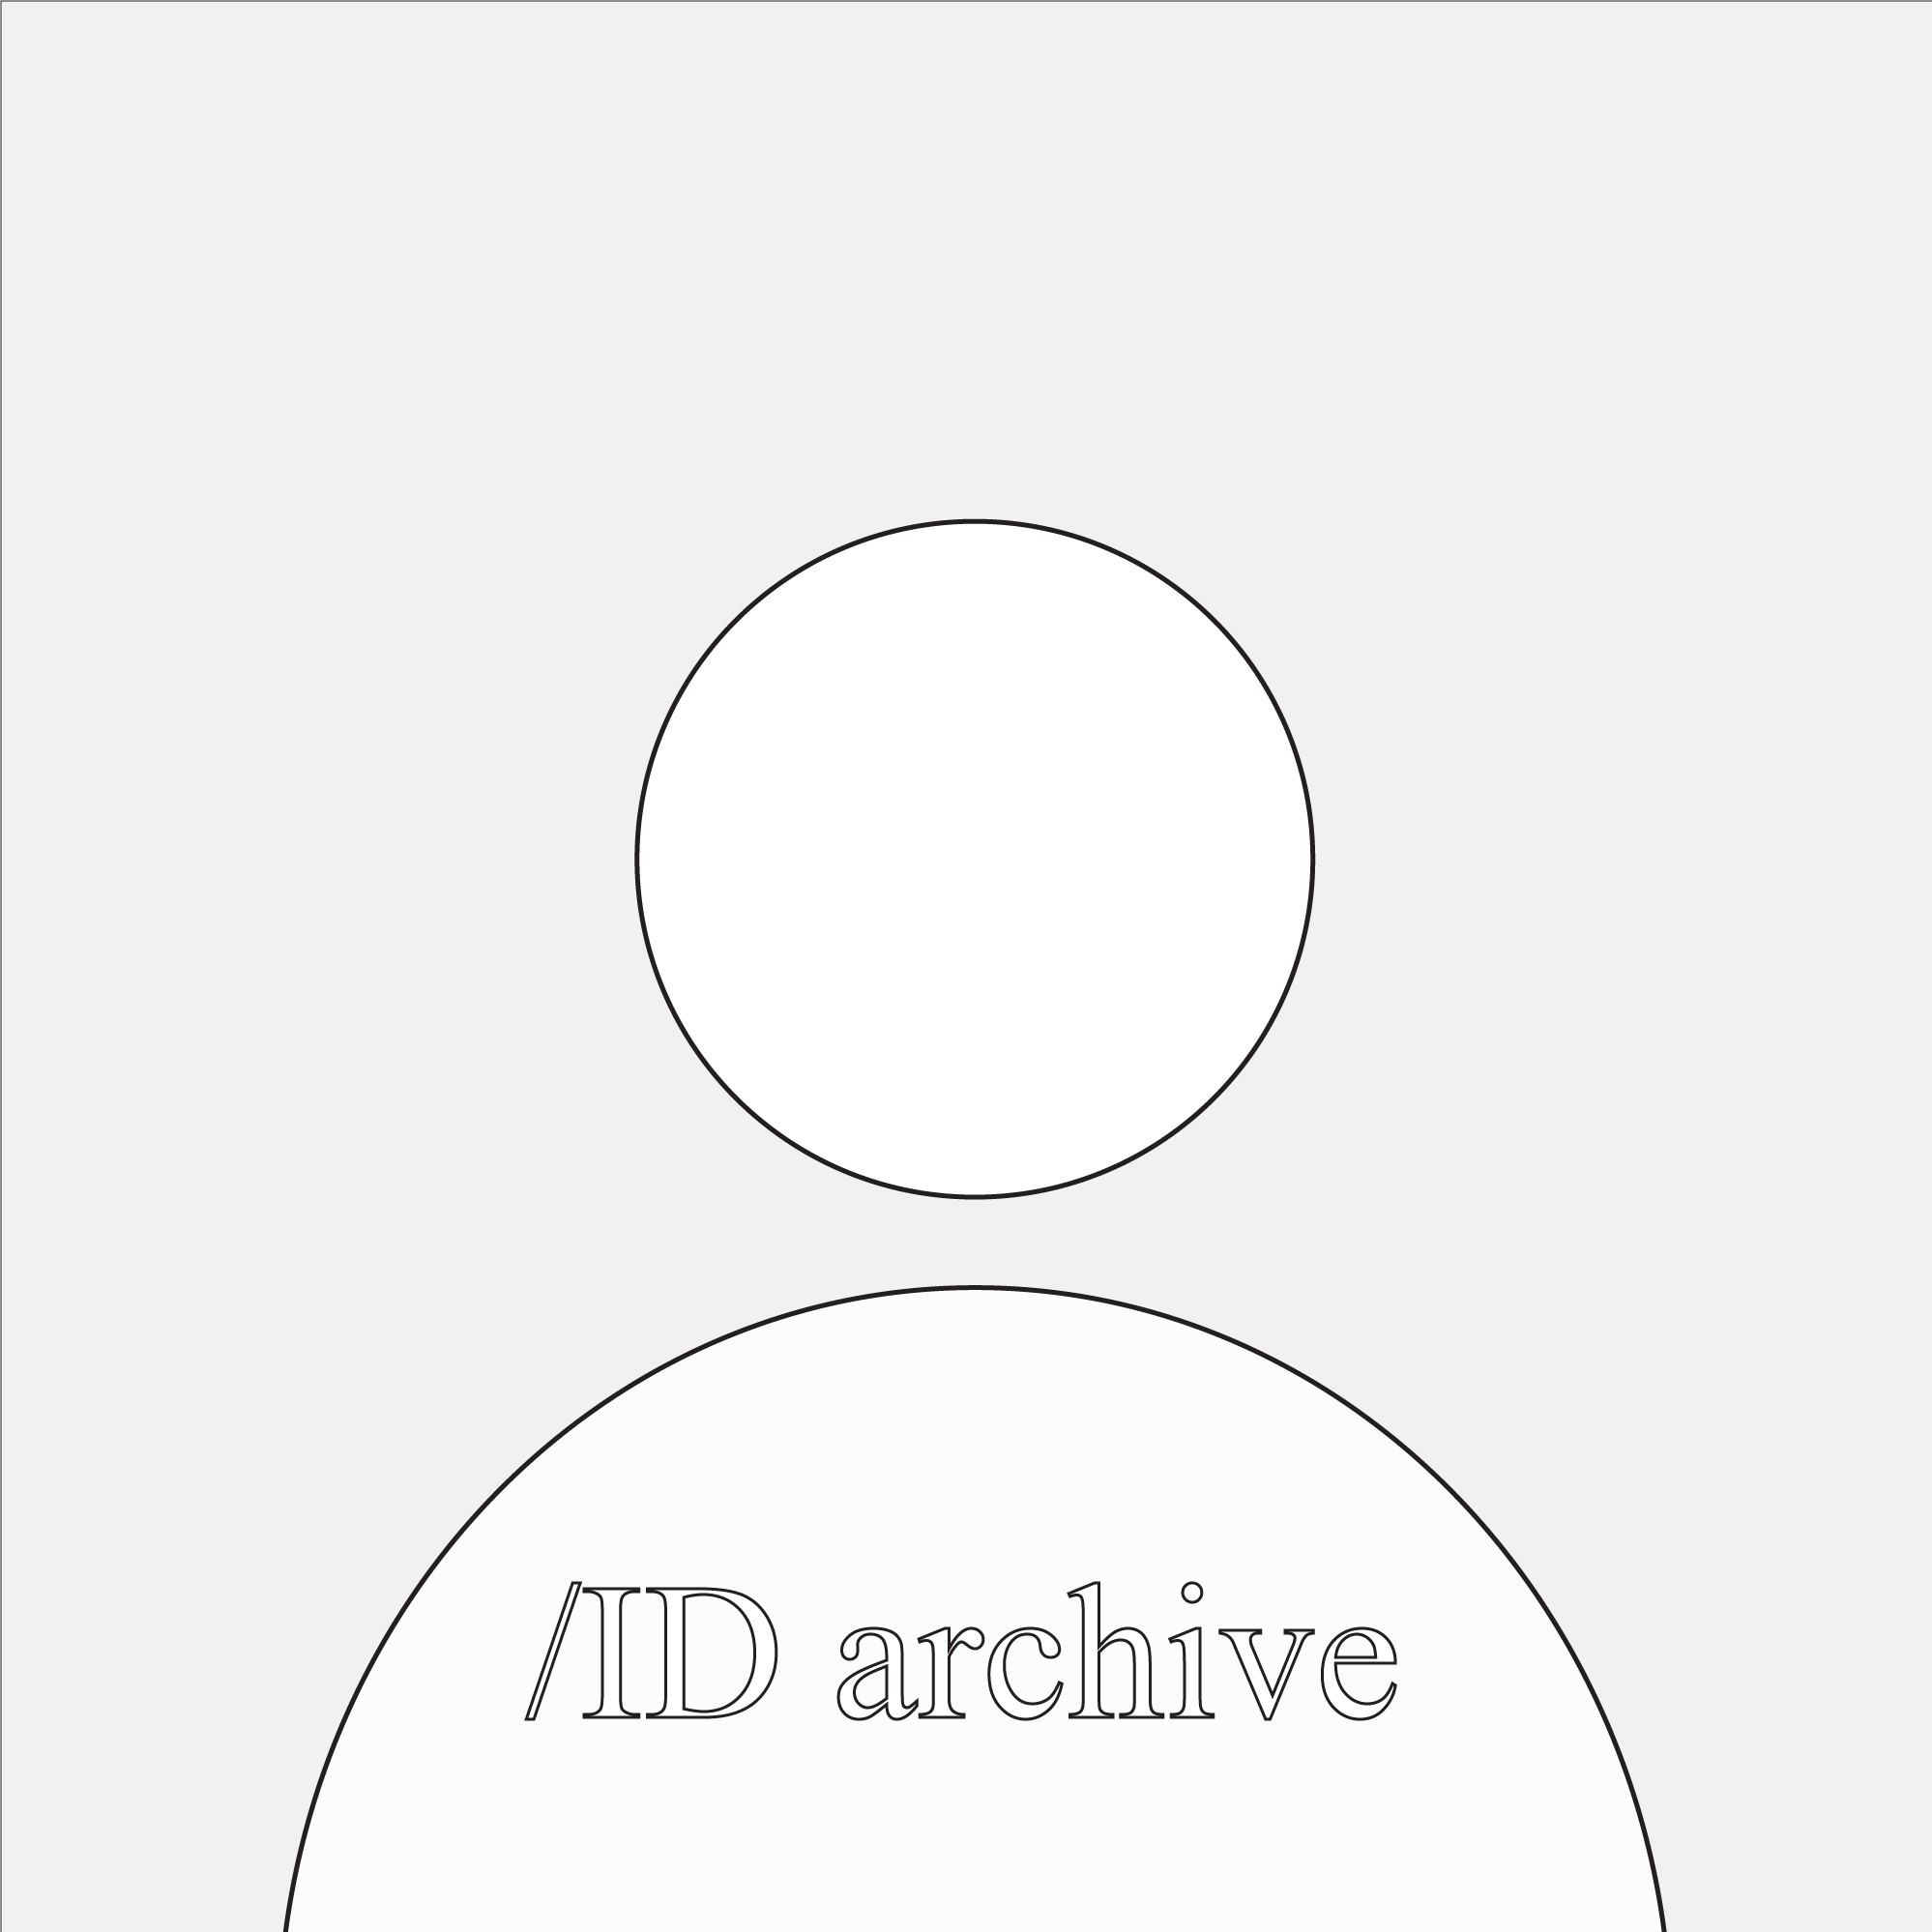 /ID archive